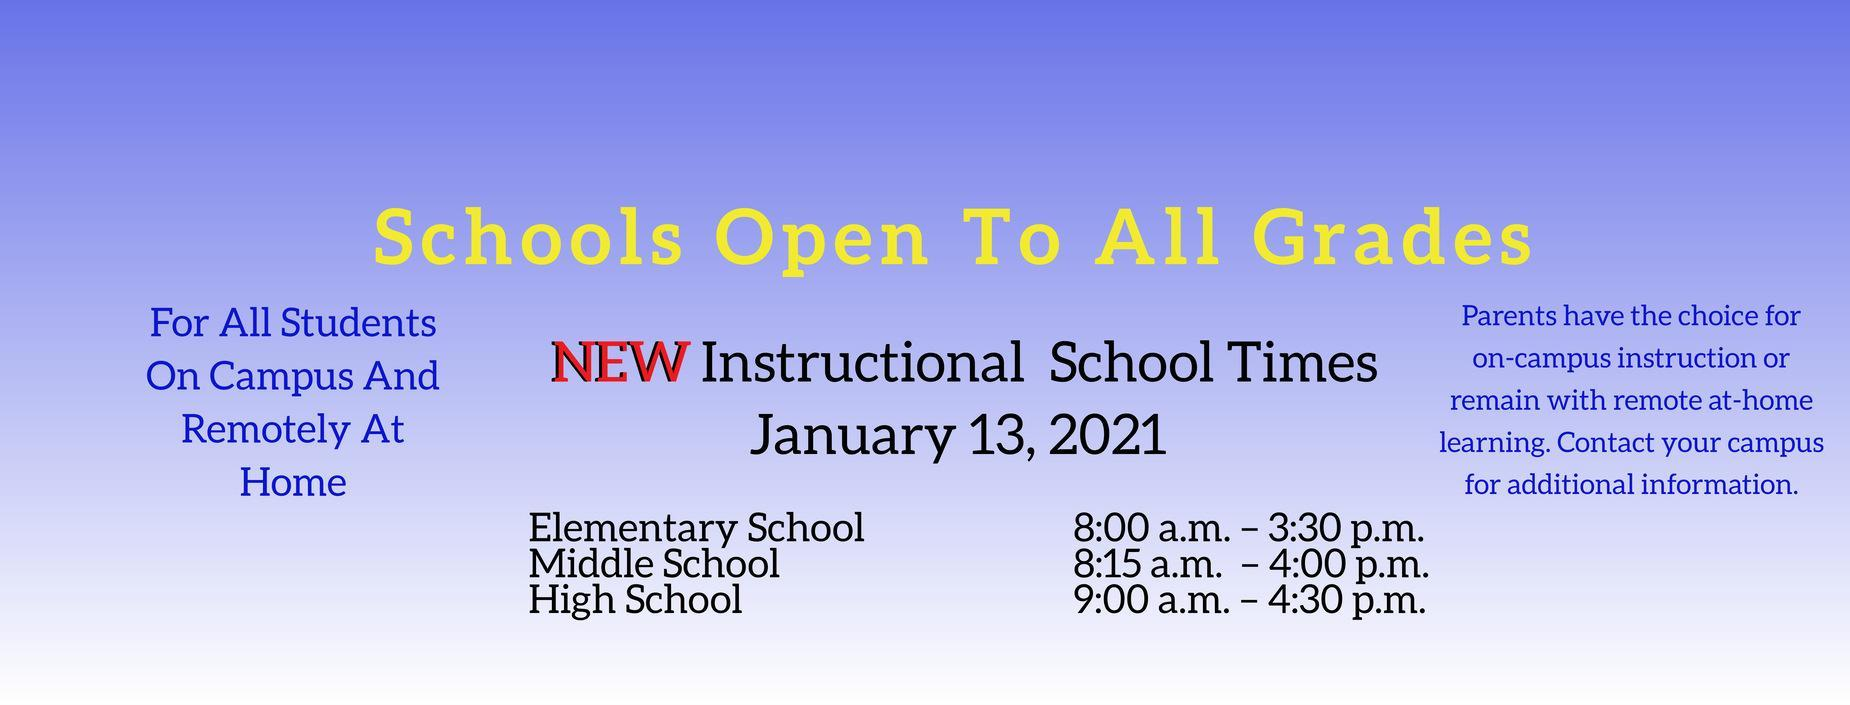 Schools Open To All Grades  NEW Instructional School Times  January 13, 2021  For All Students On Campus And Remotely At Home  Elementary School 8:00 a.m. – 3:30 p.m.  Middle School 8:15 a.m. – 4:00 p.m.  High School 9:00 a.m. – 4:30 p.m.  Parents have the choice for on-campus instruction or remain with remote at-home learning. Contact your campus for additional information.